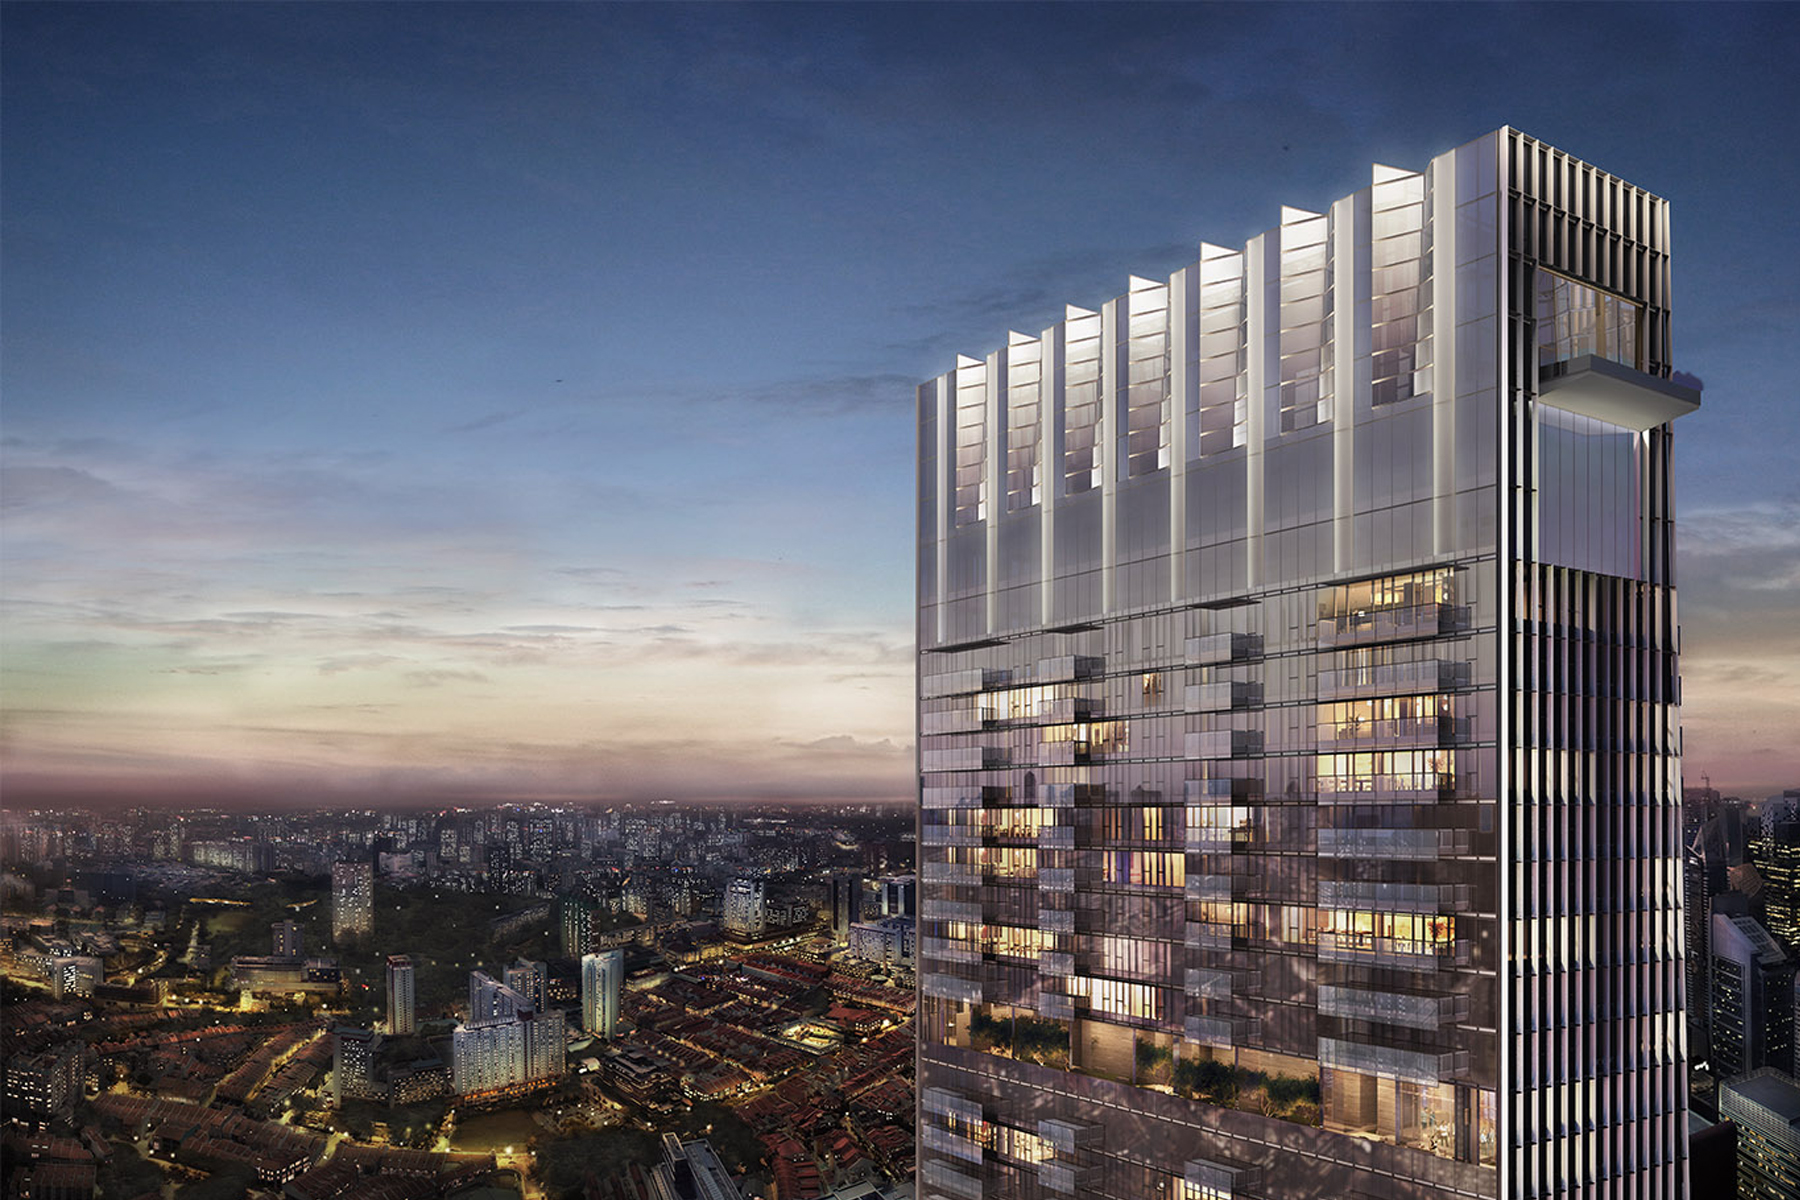 콘도미니엄 용 매매 에 The Wallich Residence Super Penthouse Singapore, 078882 싱가포르